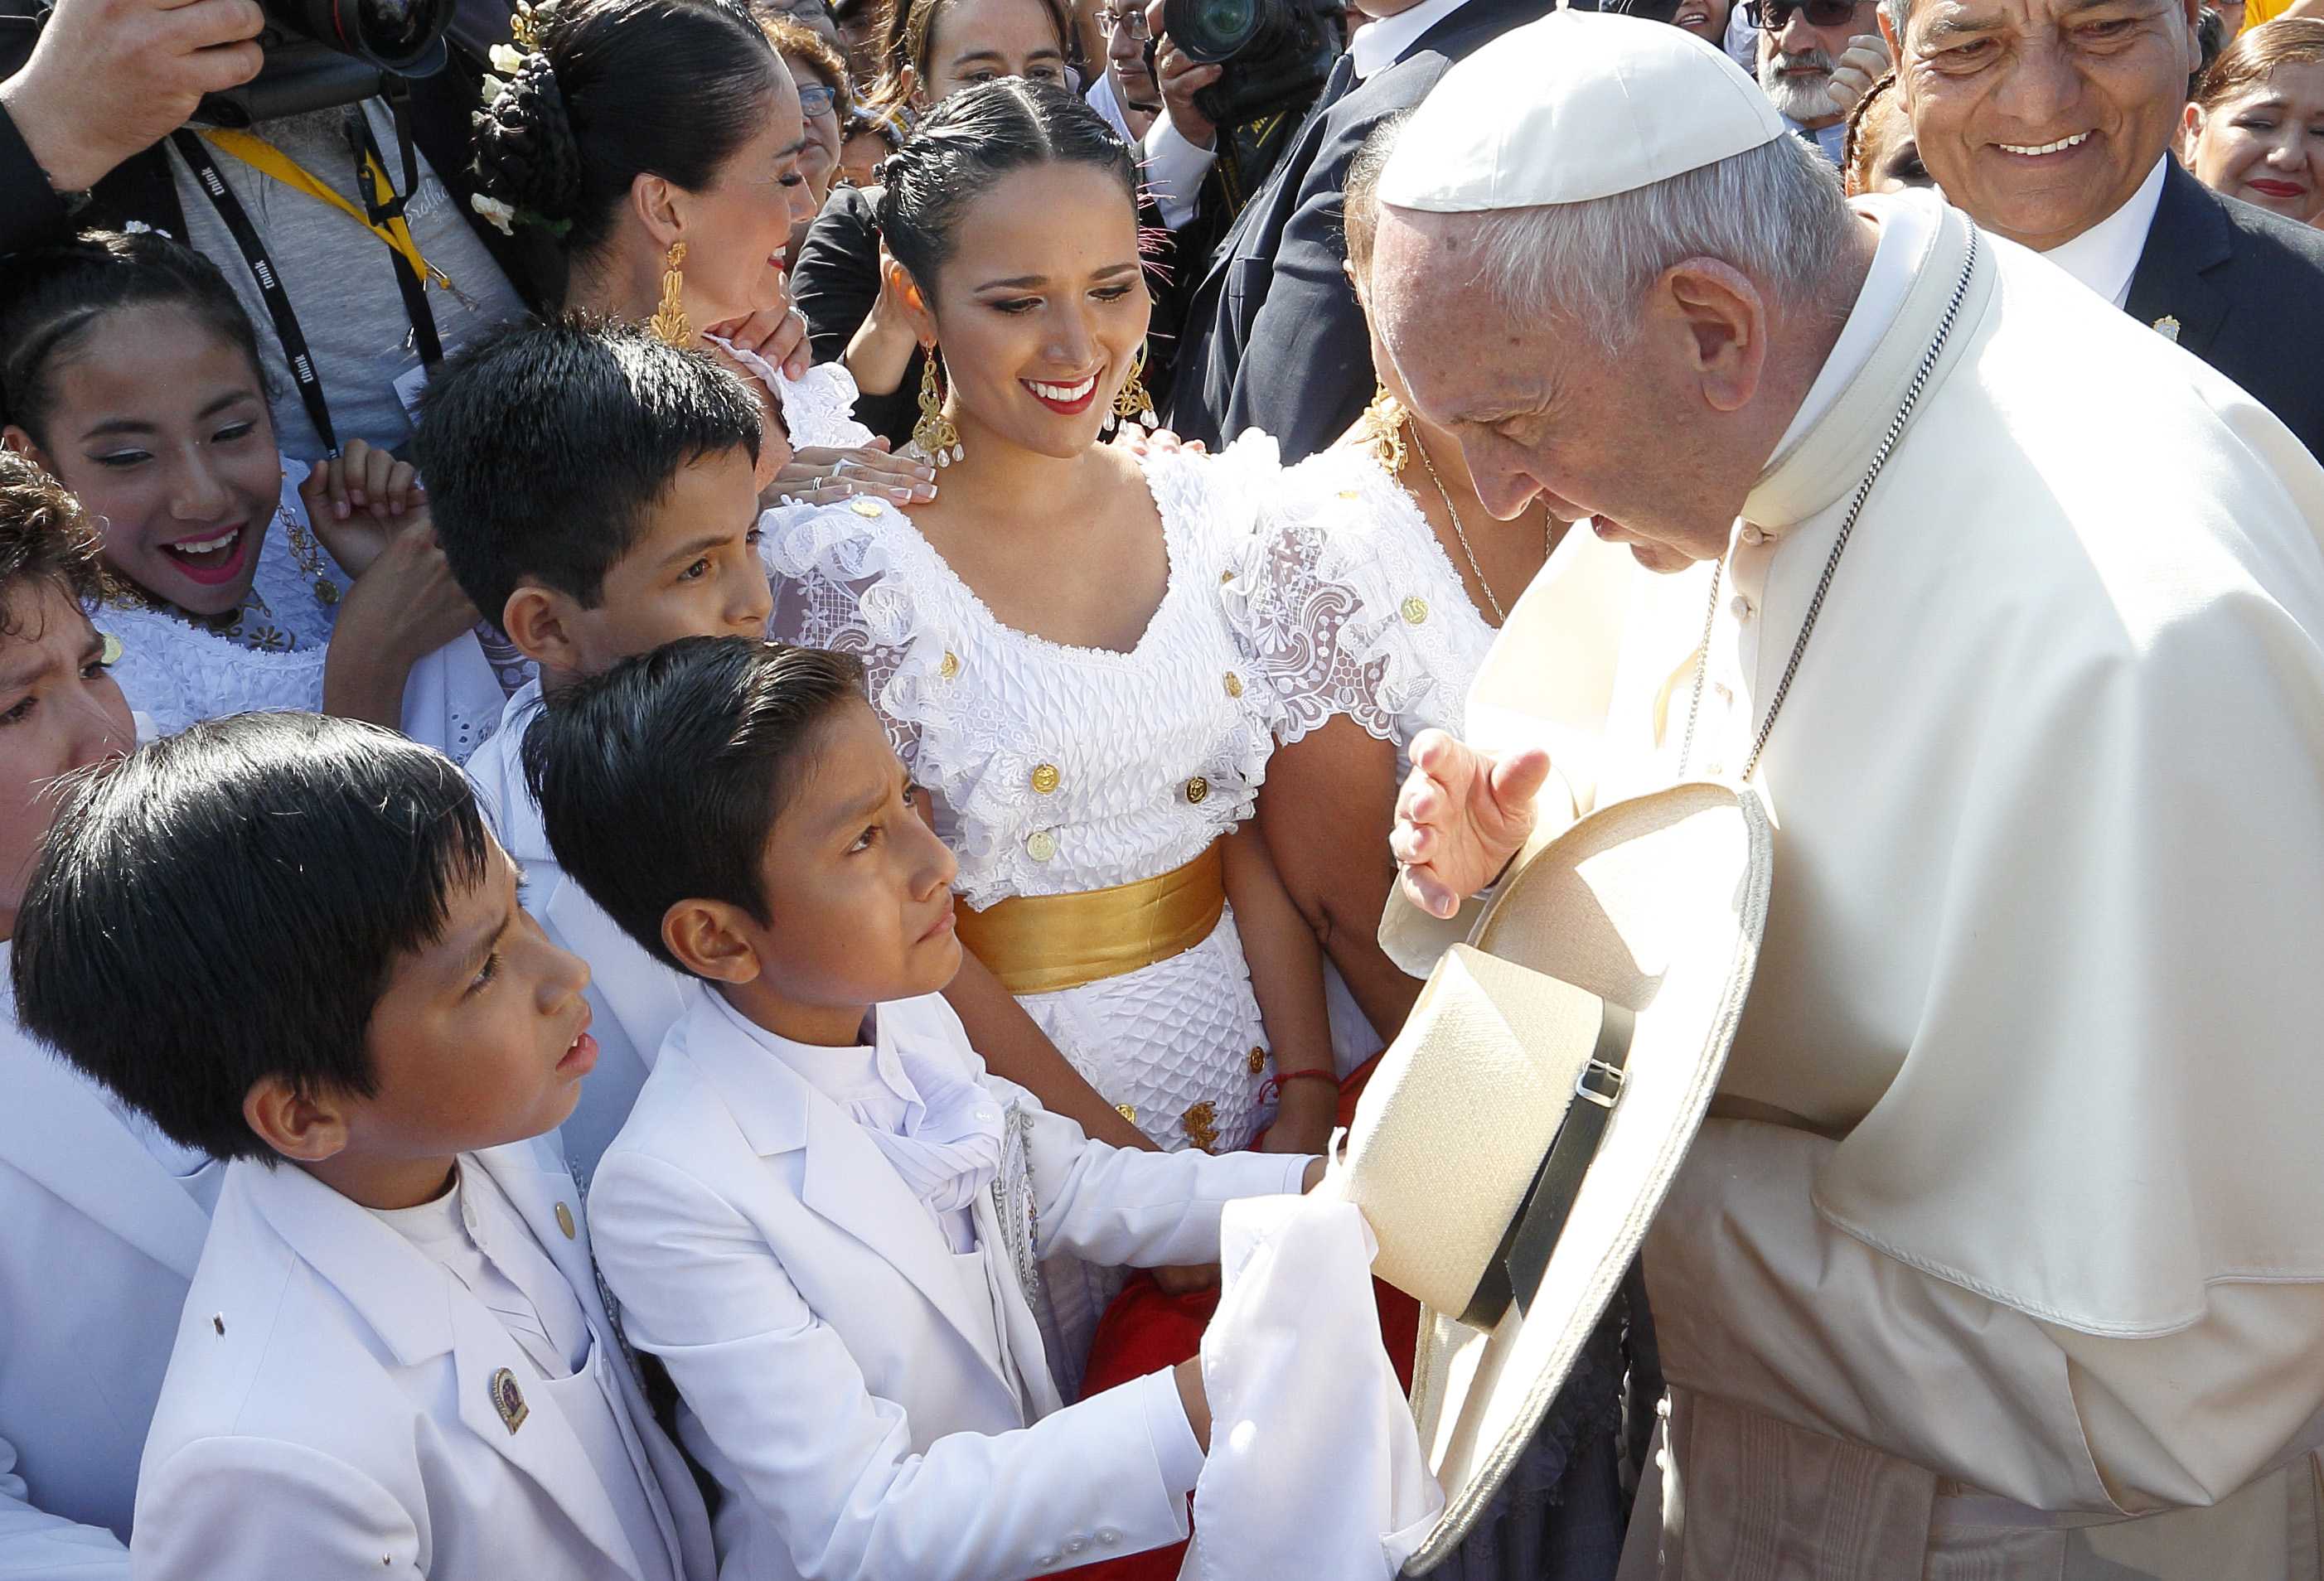 Popes Homily at Huanchaco Beach, Peru: Full Text